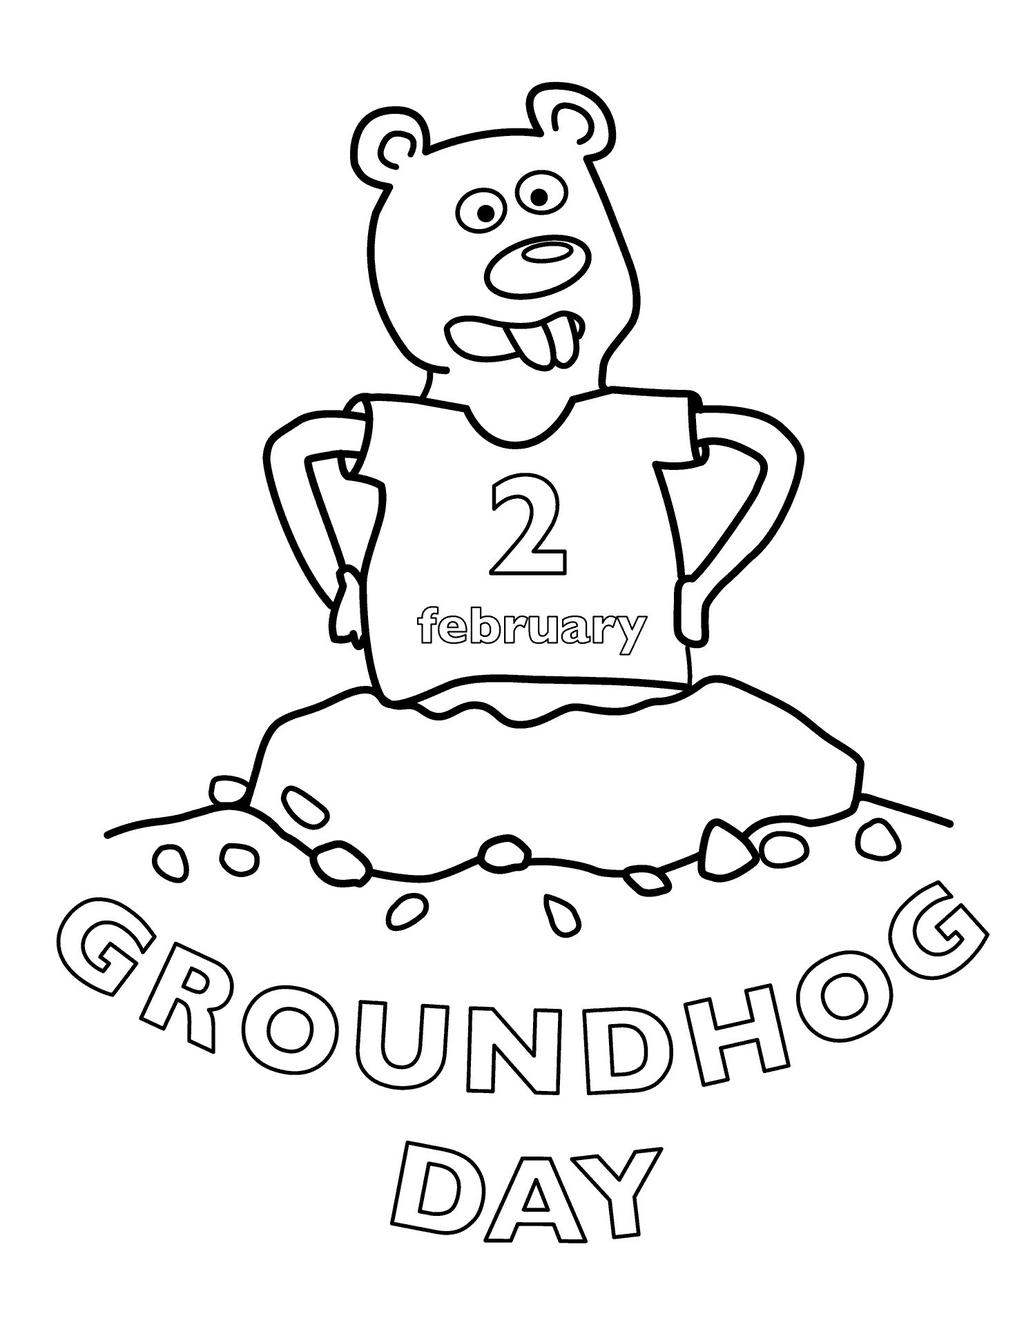 Groundhog Day Coloring Pages for Kids - Free Printable Coloring Pages